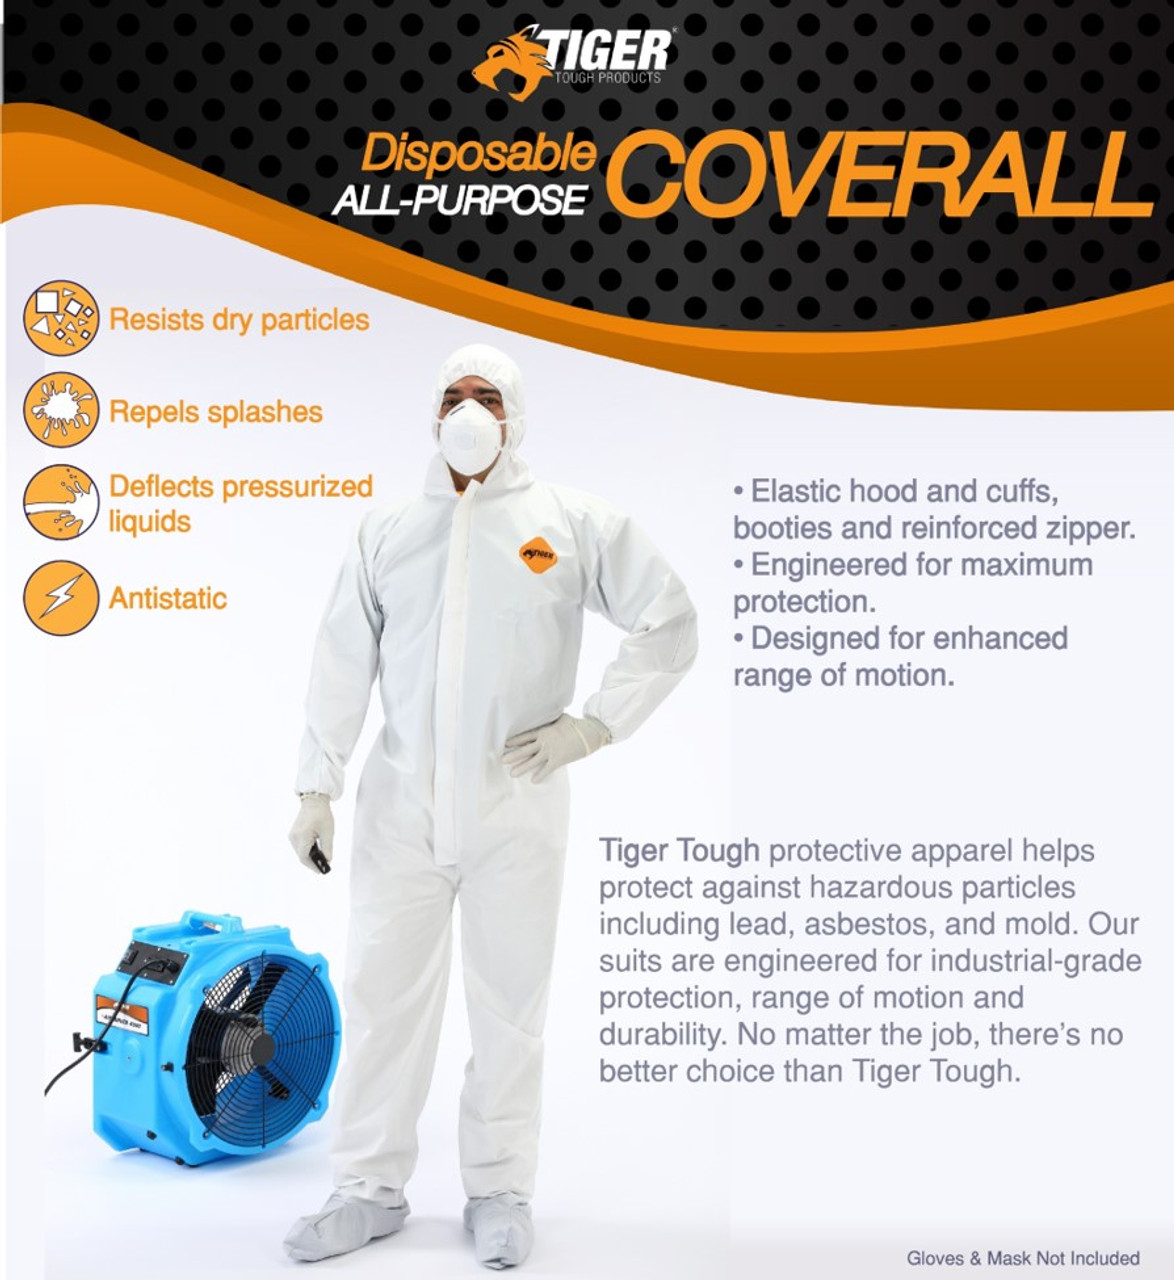 Tiger Tough Disposable All Purpose Coverall